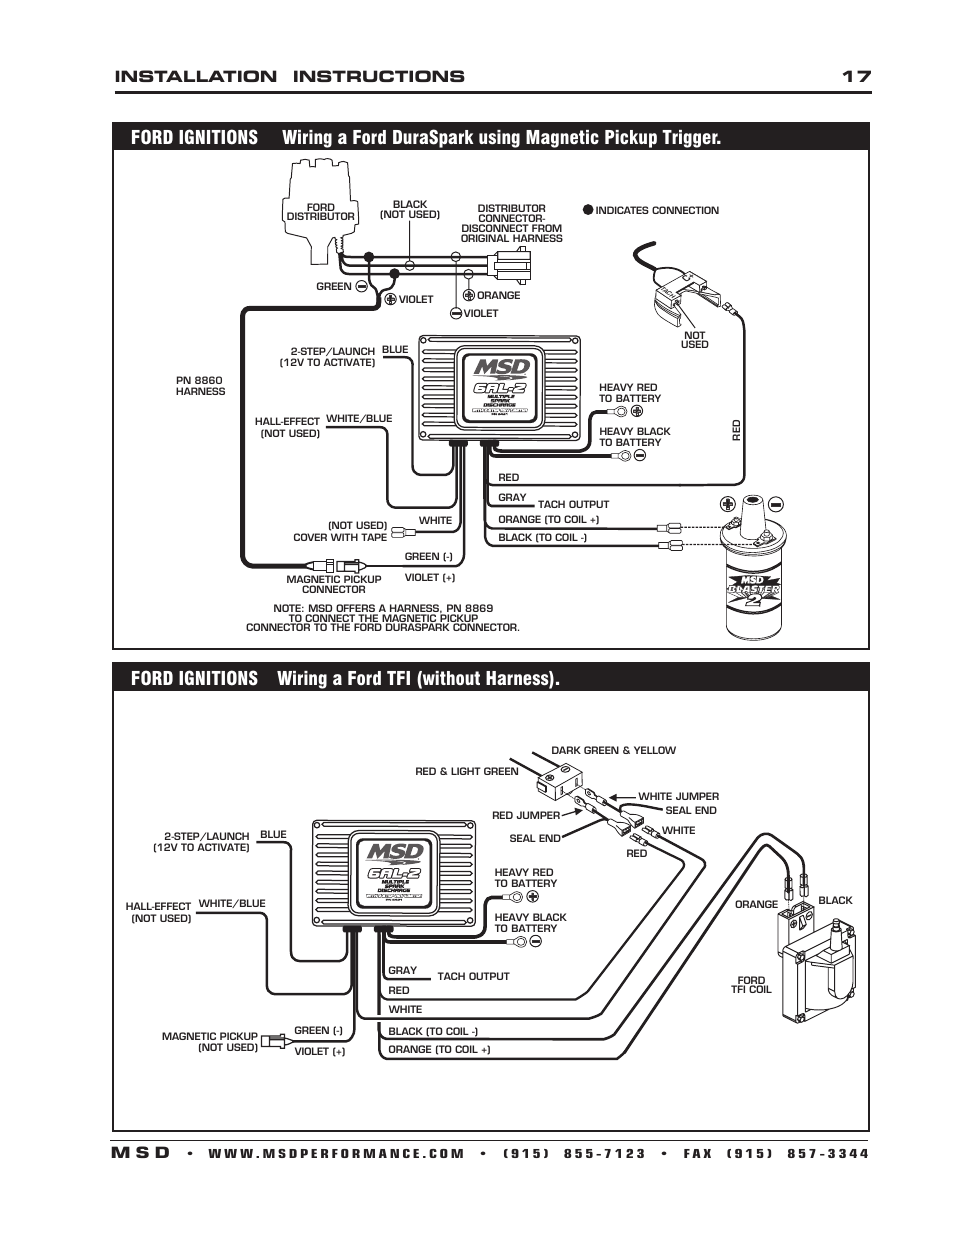 msd 6421 6al 2 ignition control installation page17 100 [ wiring diagram for msd distributor ] msd pro billet msd 6200 wiring diagram at gsmx.co